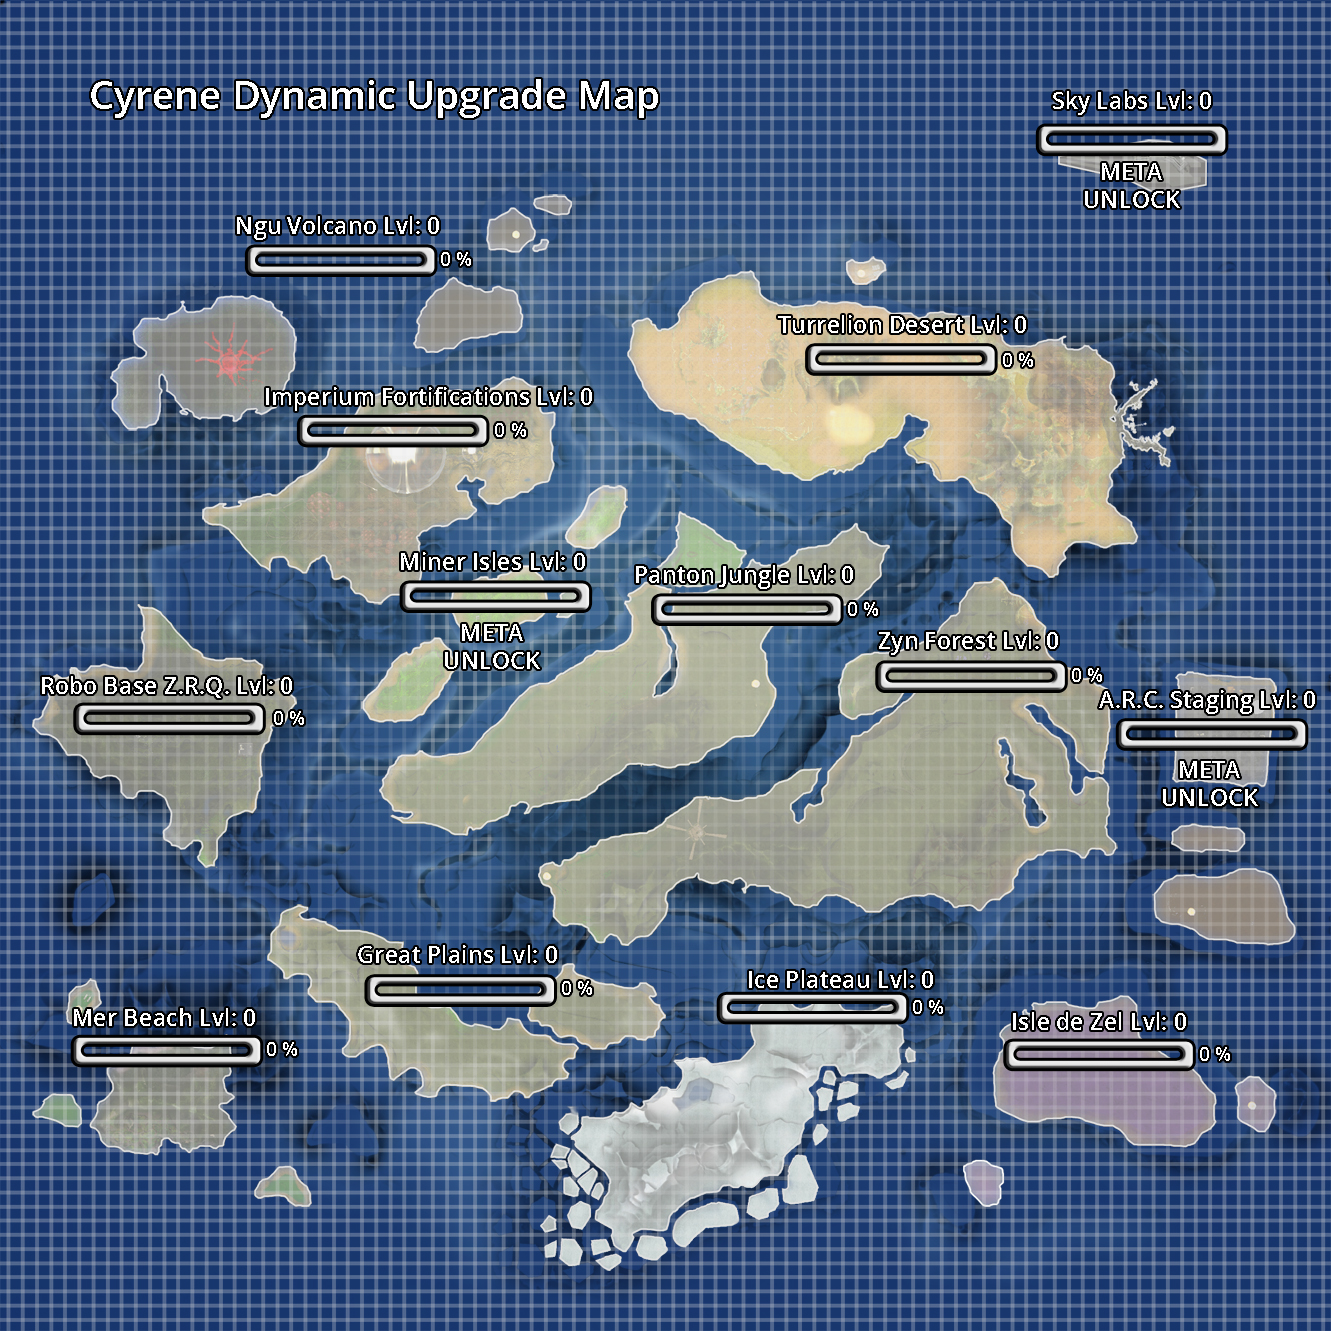 Cyrene Dymanic Upgrade Map - October 29th 2014.jpg